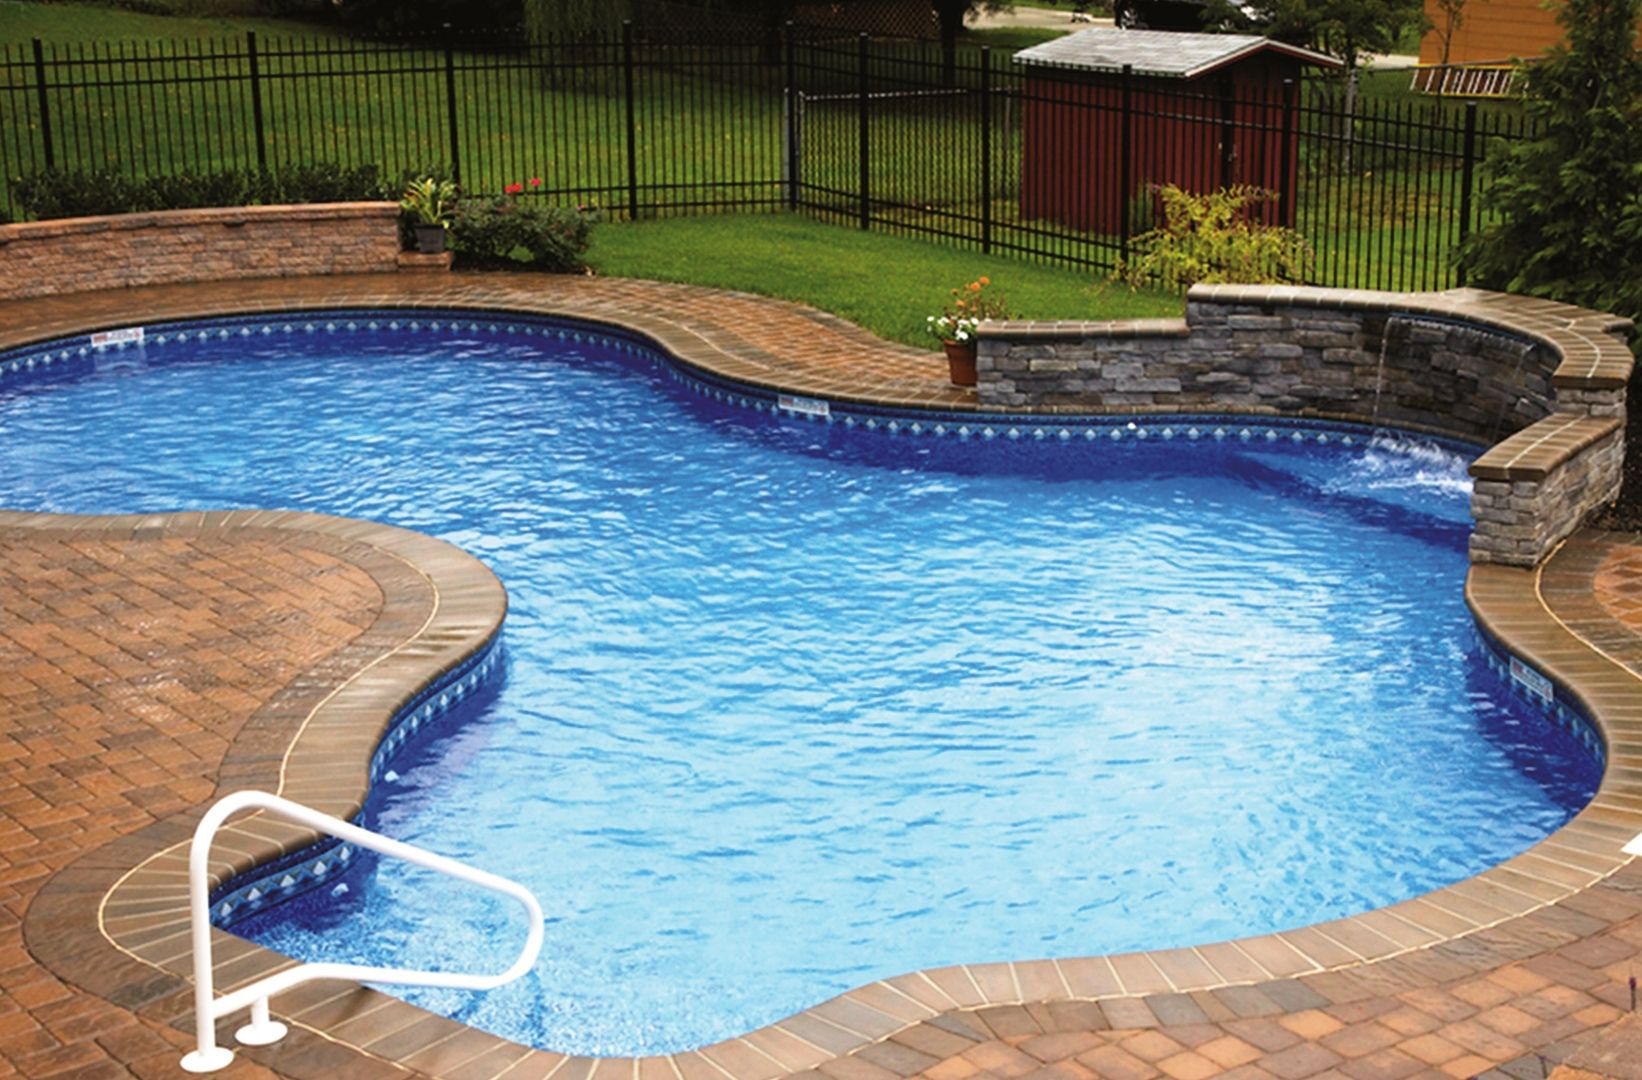 Back yard swimming pool ideas swimming pool design for Pool design by poolside